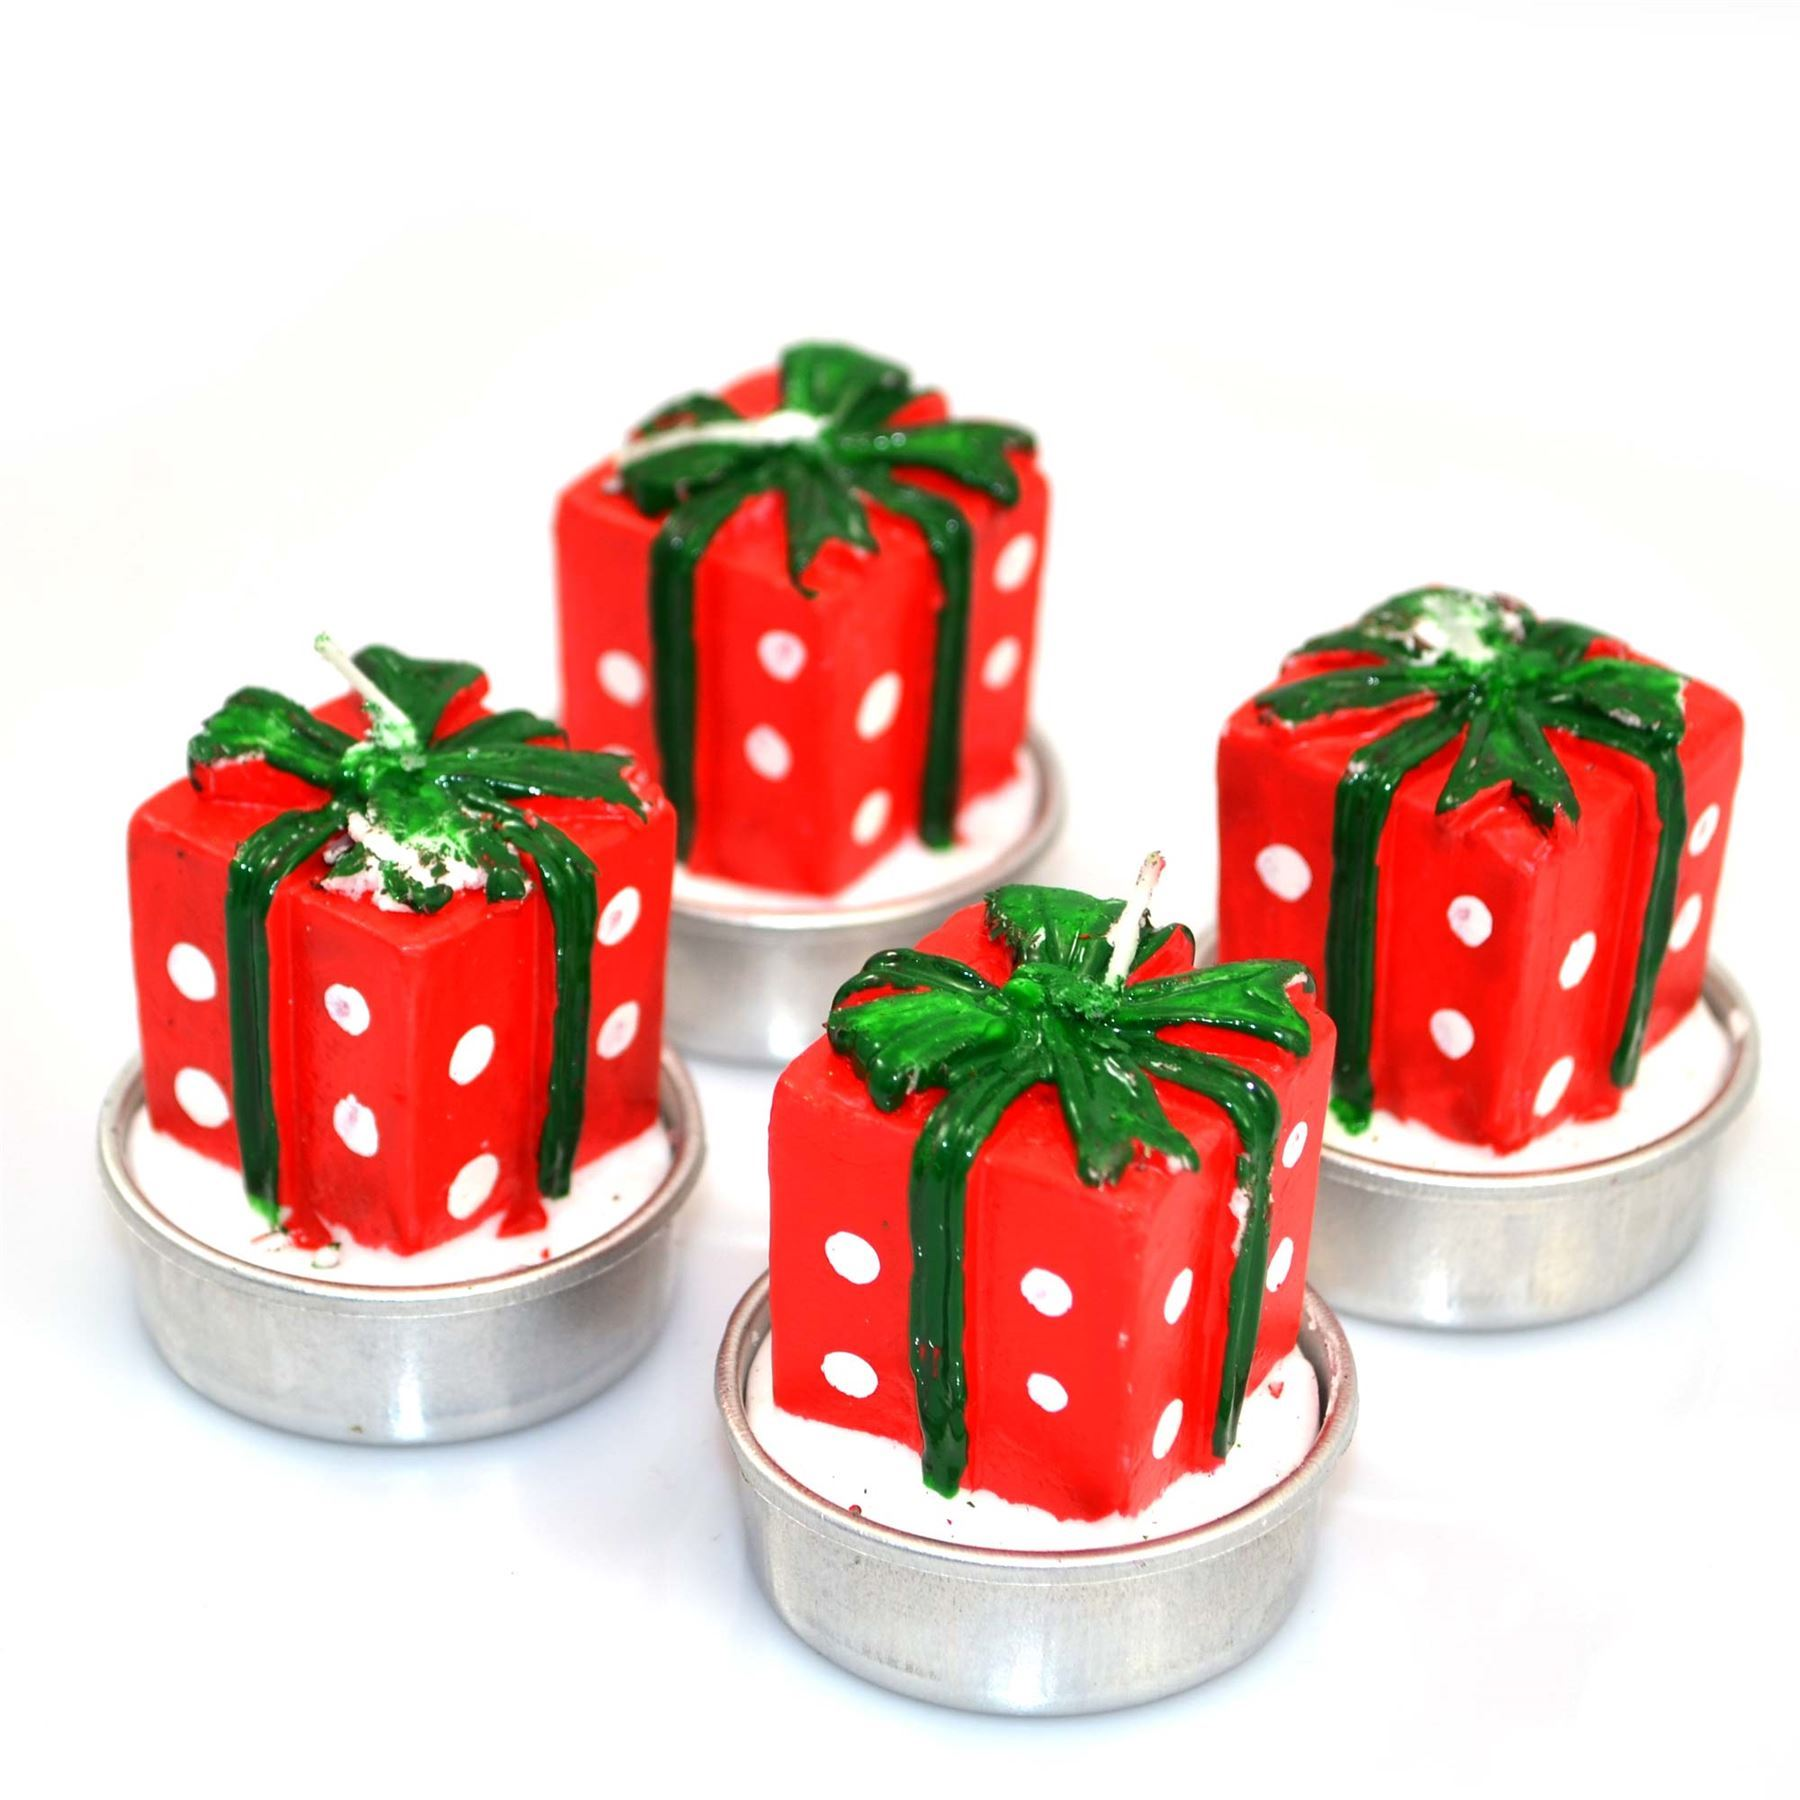 Shatchi novelty christmas decorations candles wedding party xmas picture 2 of 2 junglespirit Gallery